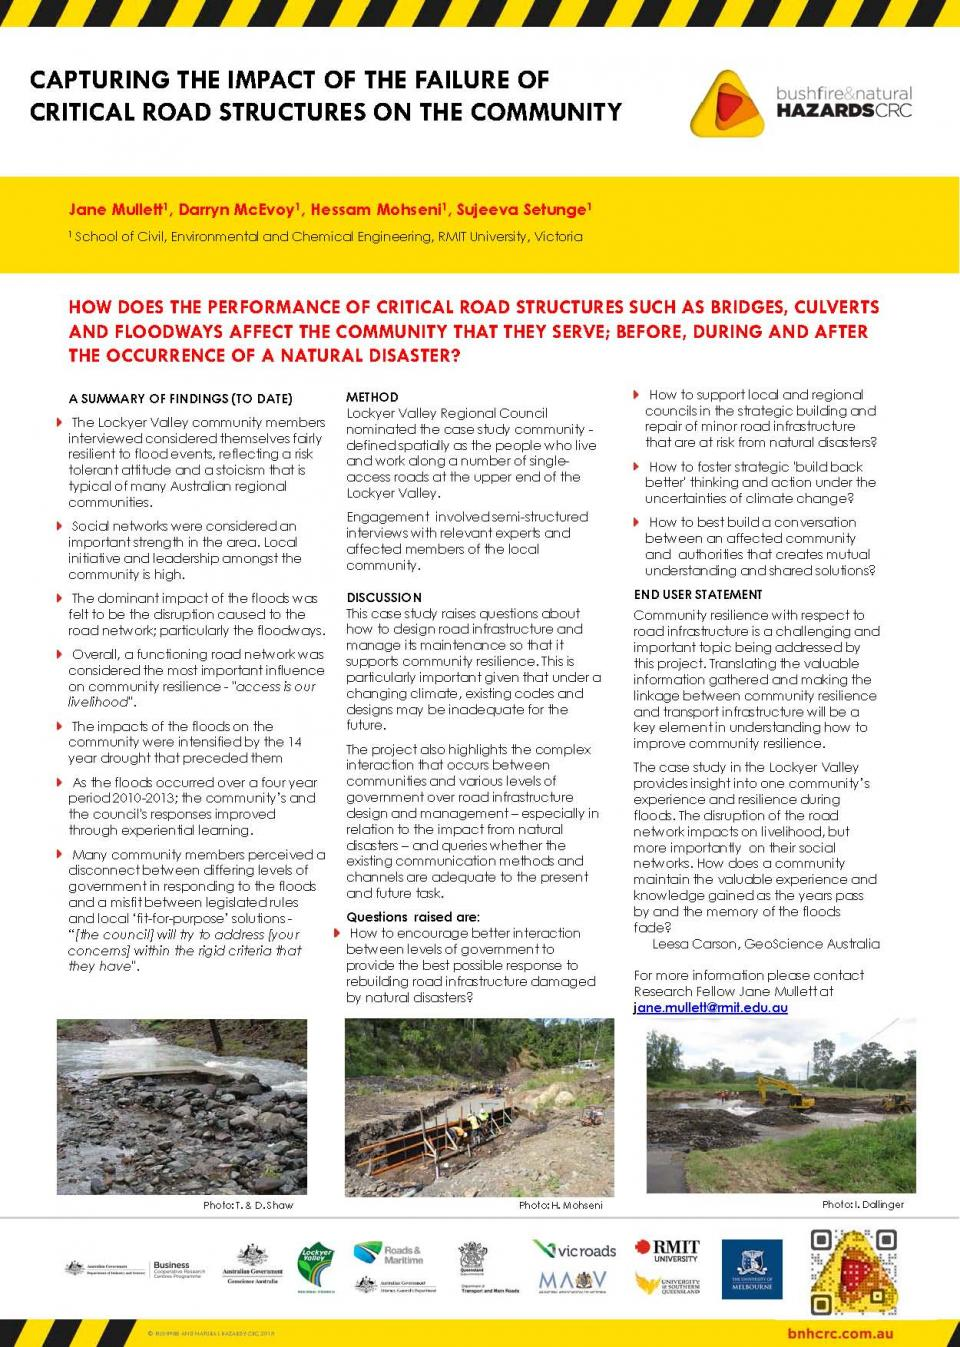 Capturing the Impact of the Failure of Critical Road Structures on the Community